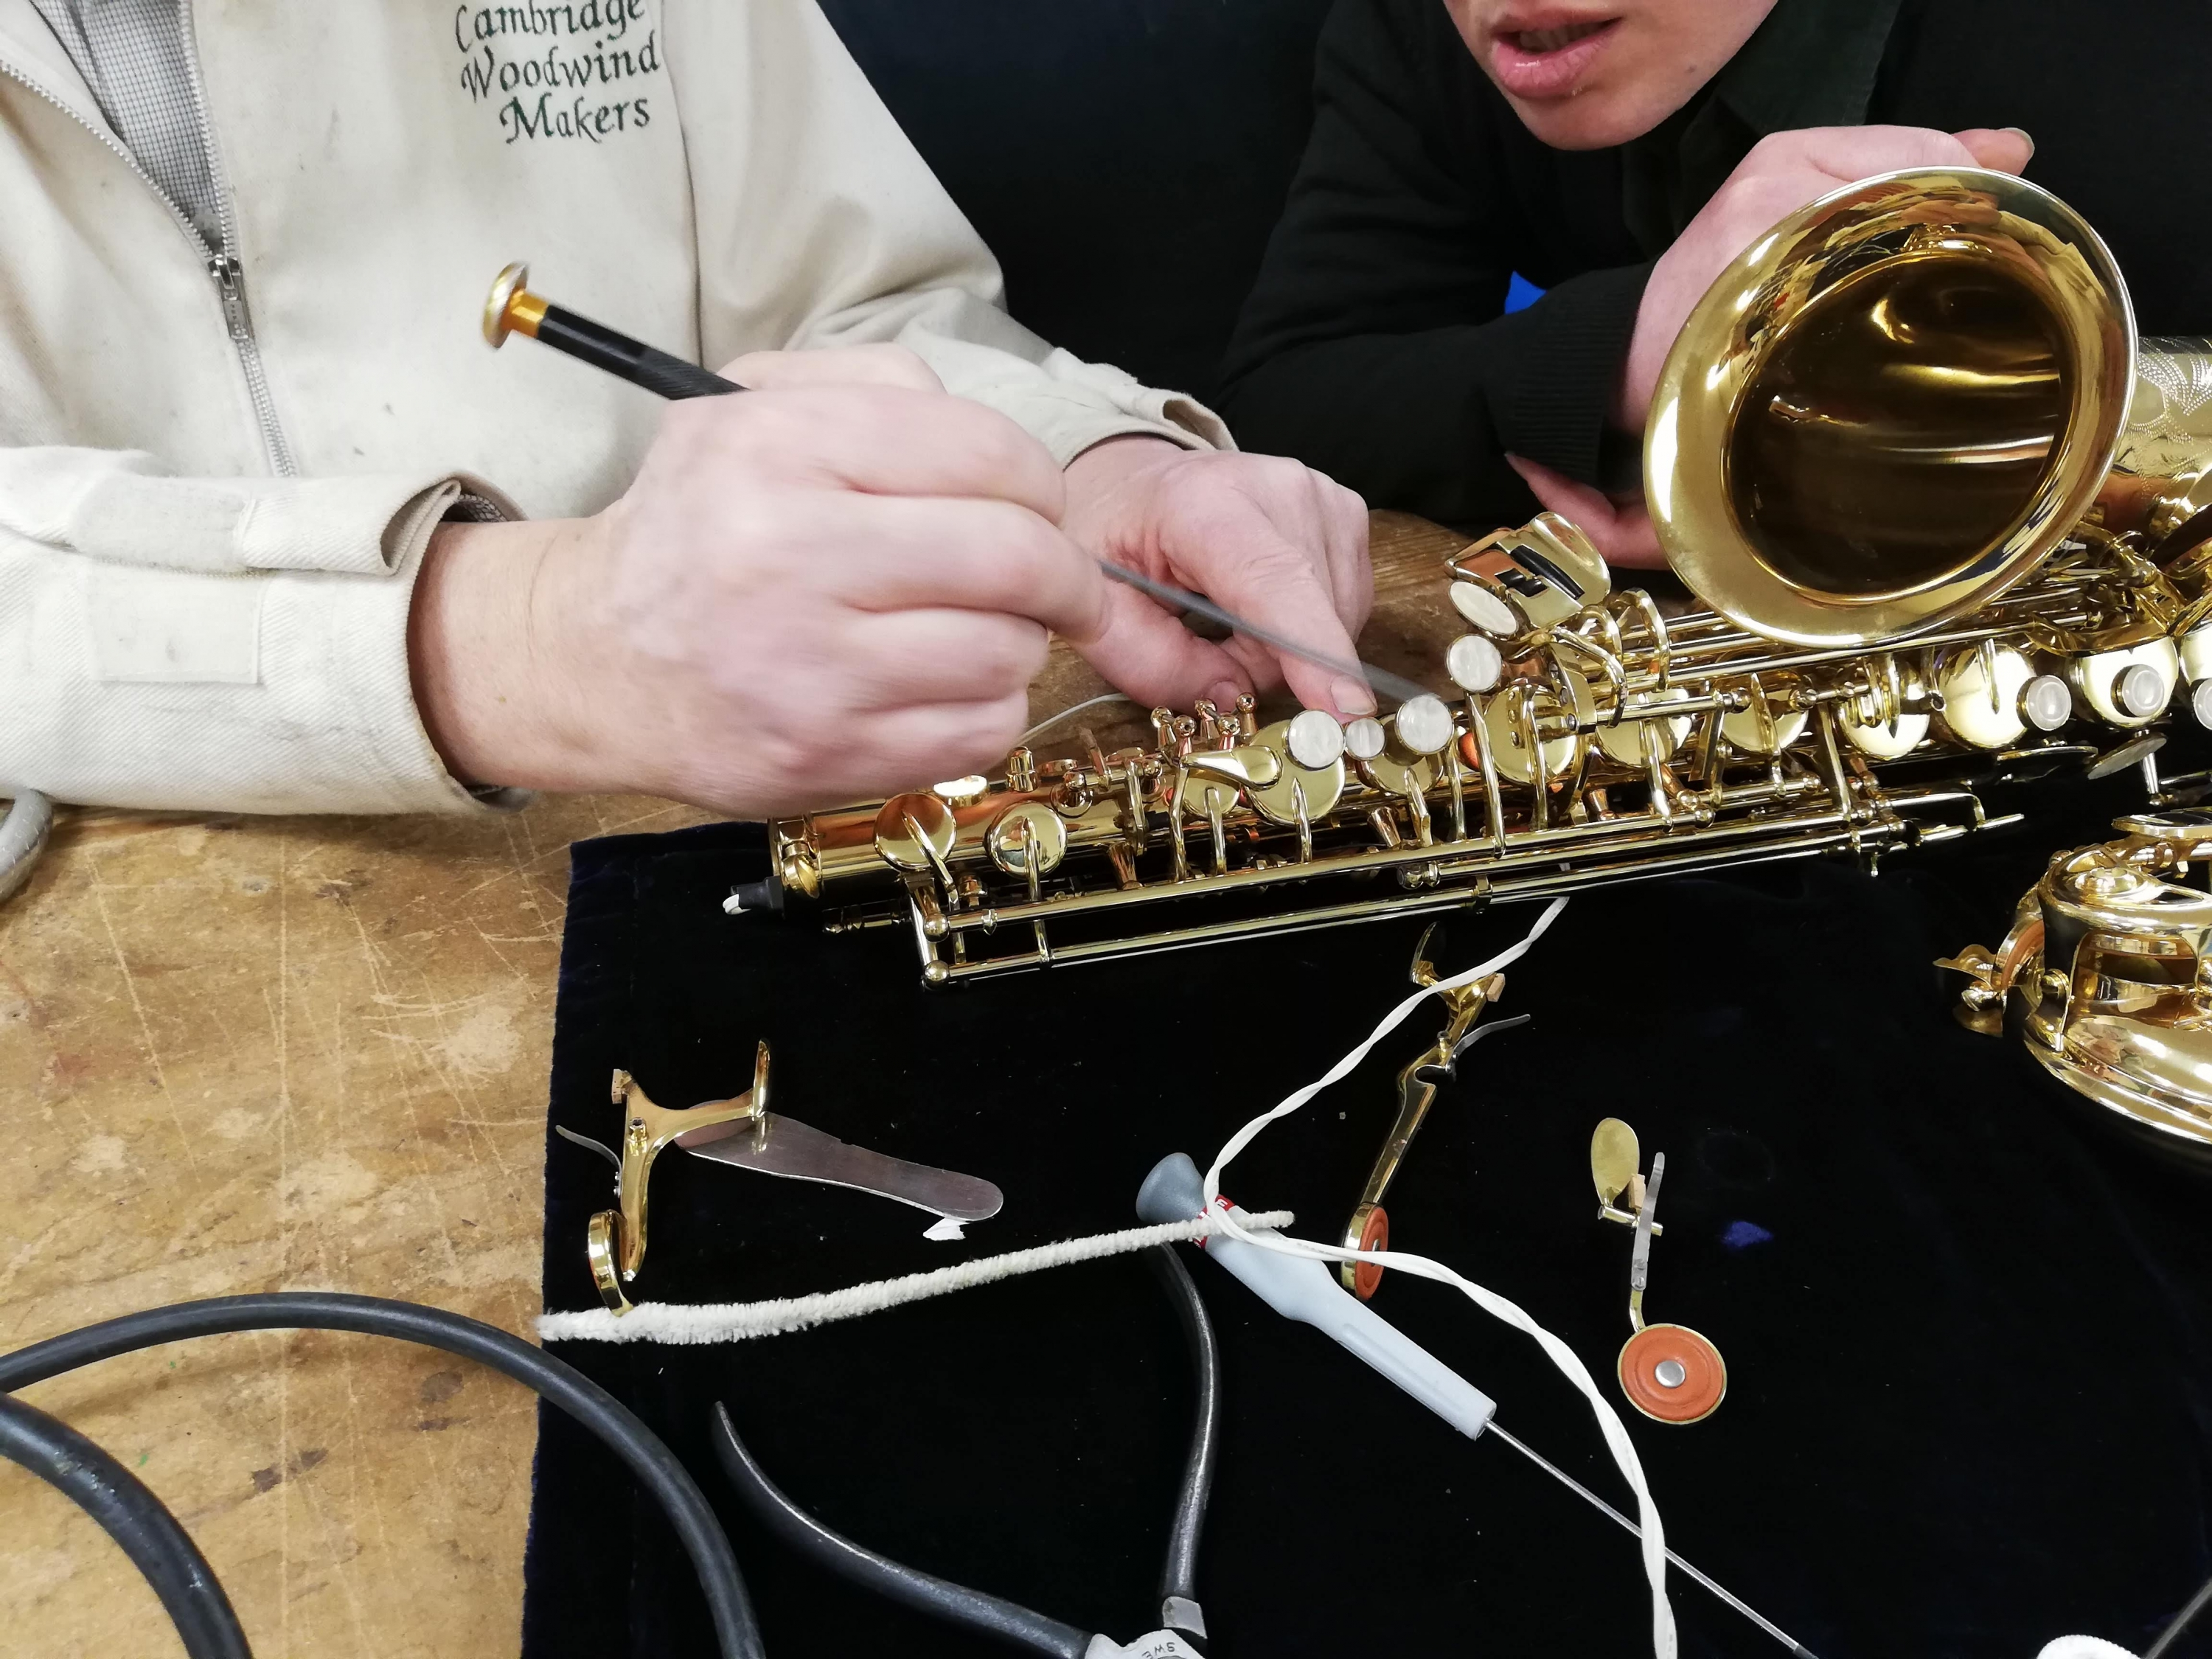 Saxophone Repair and Care with Daniel Bangham at Cambridge Woodwind Makers